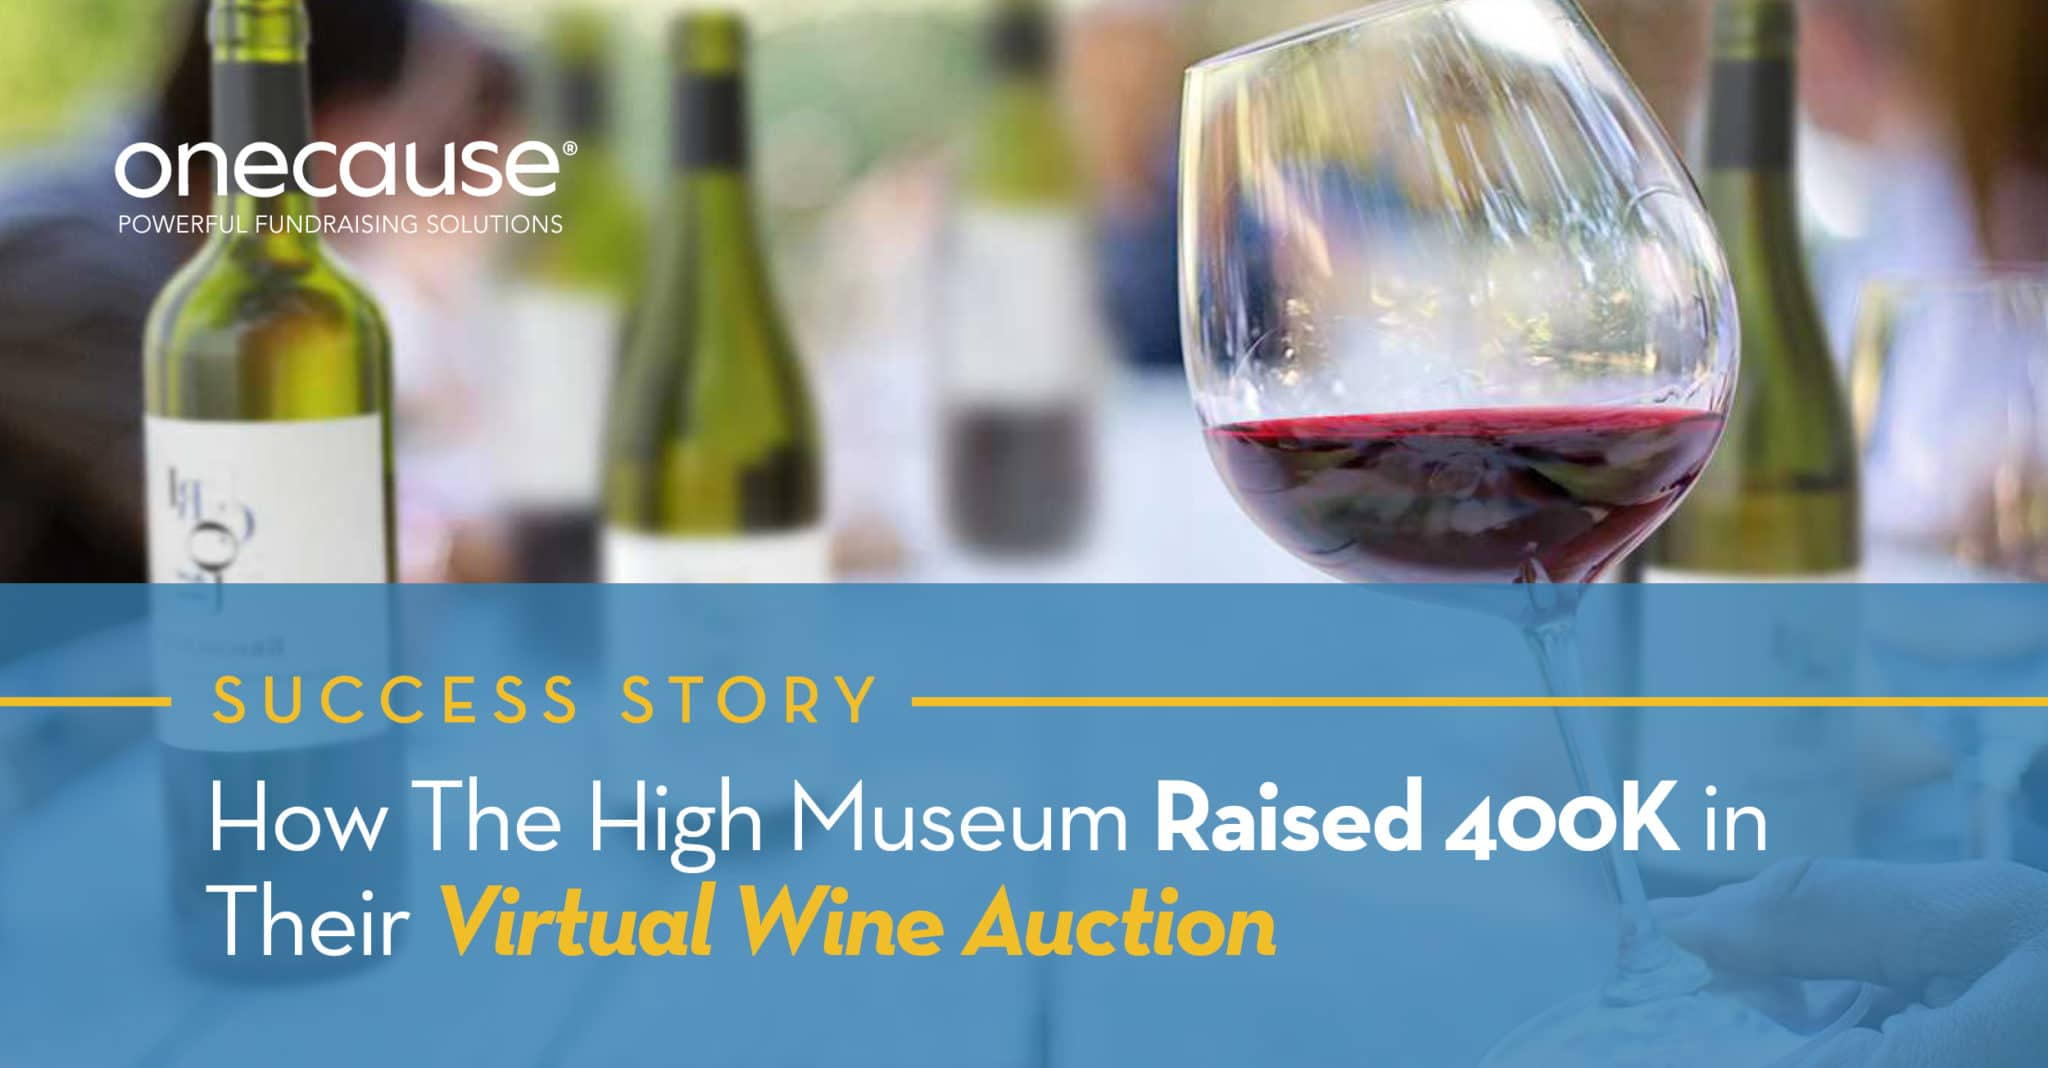 How The High Museum Raised More 400K in Their Virtual Wine Auction